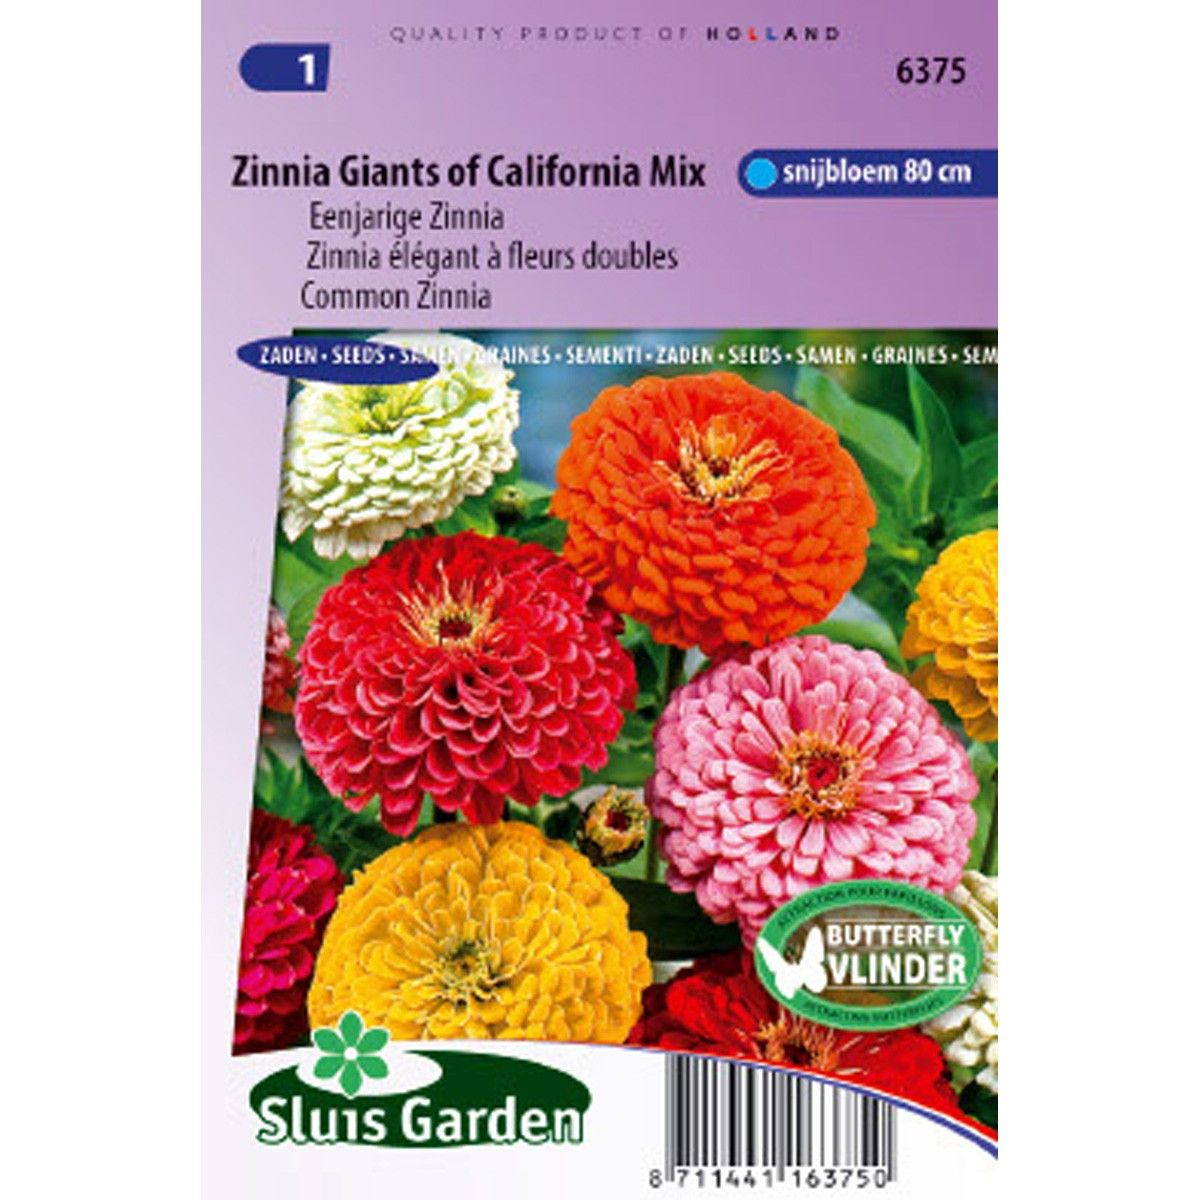 Zinnia Géant de Californie en mélange - Zinnia elegans Giant of California Mix